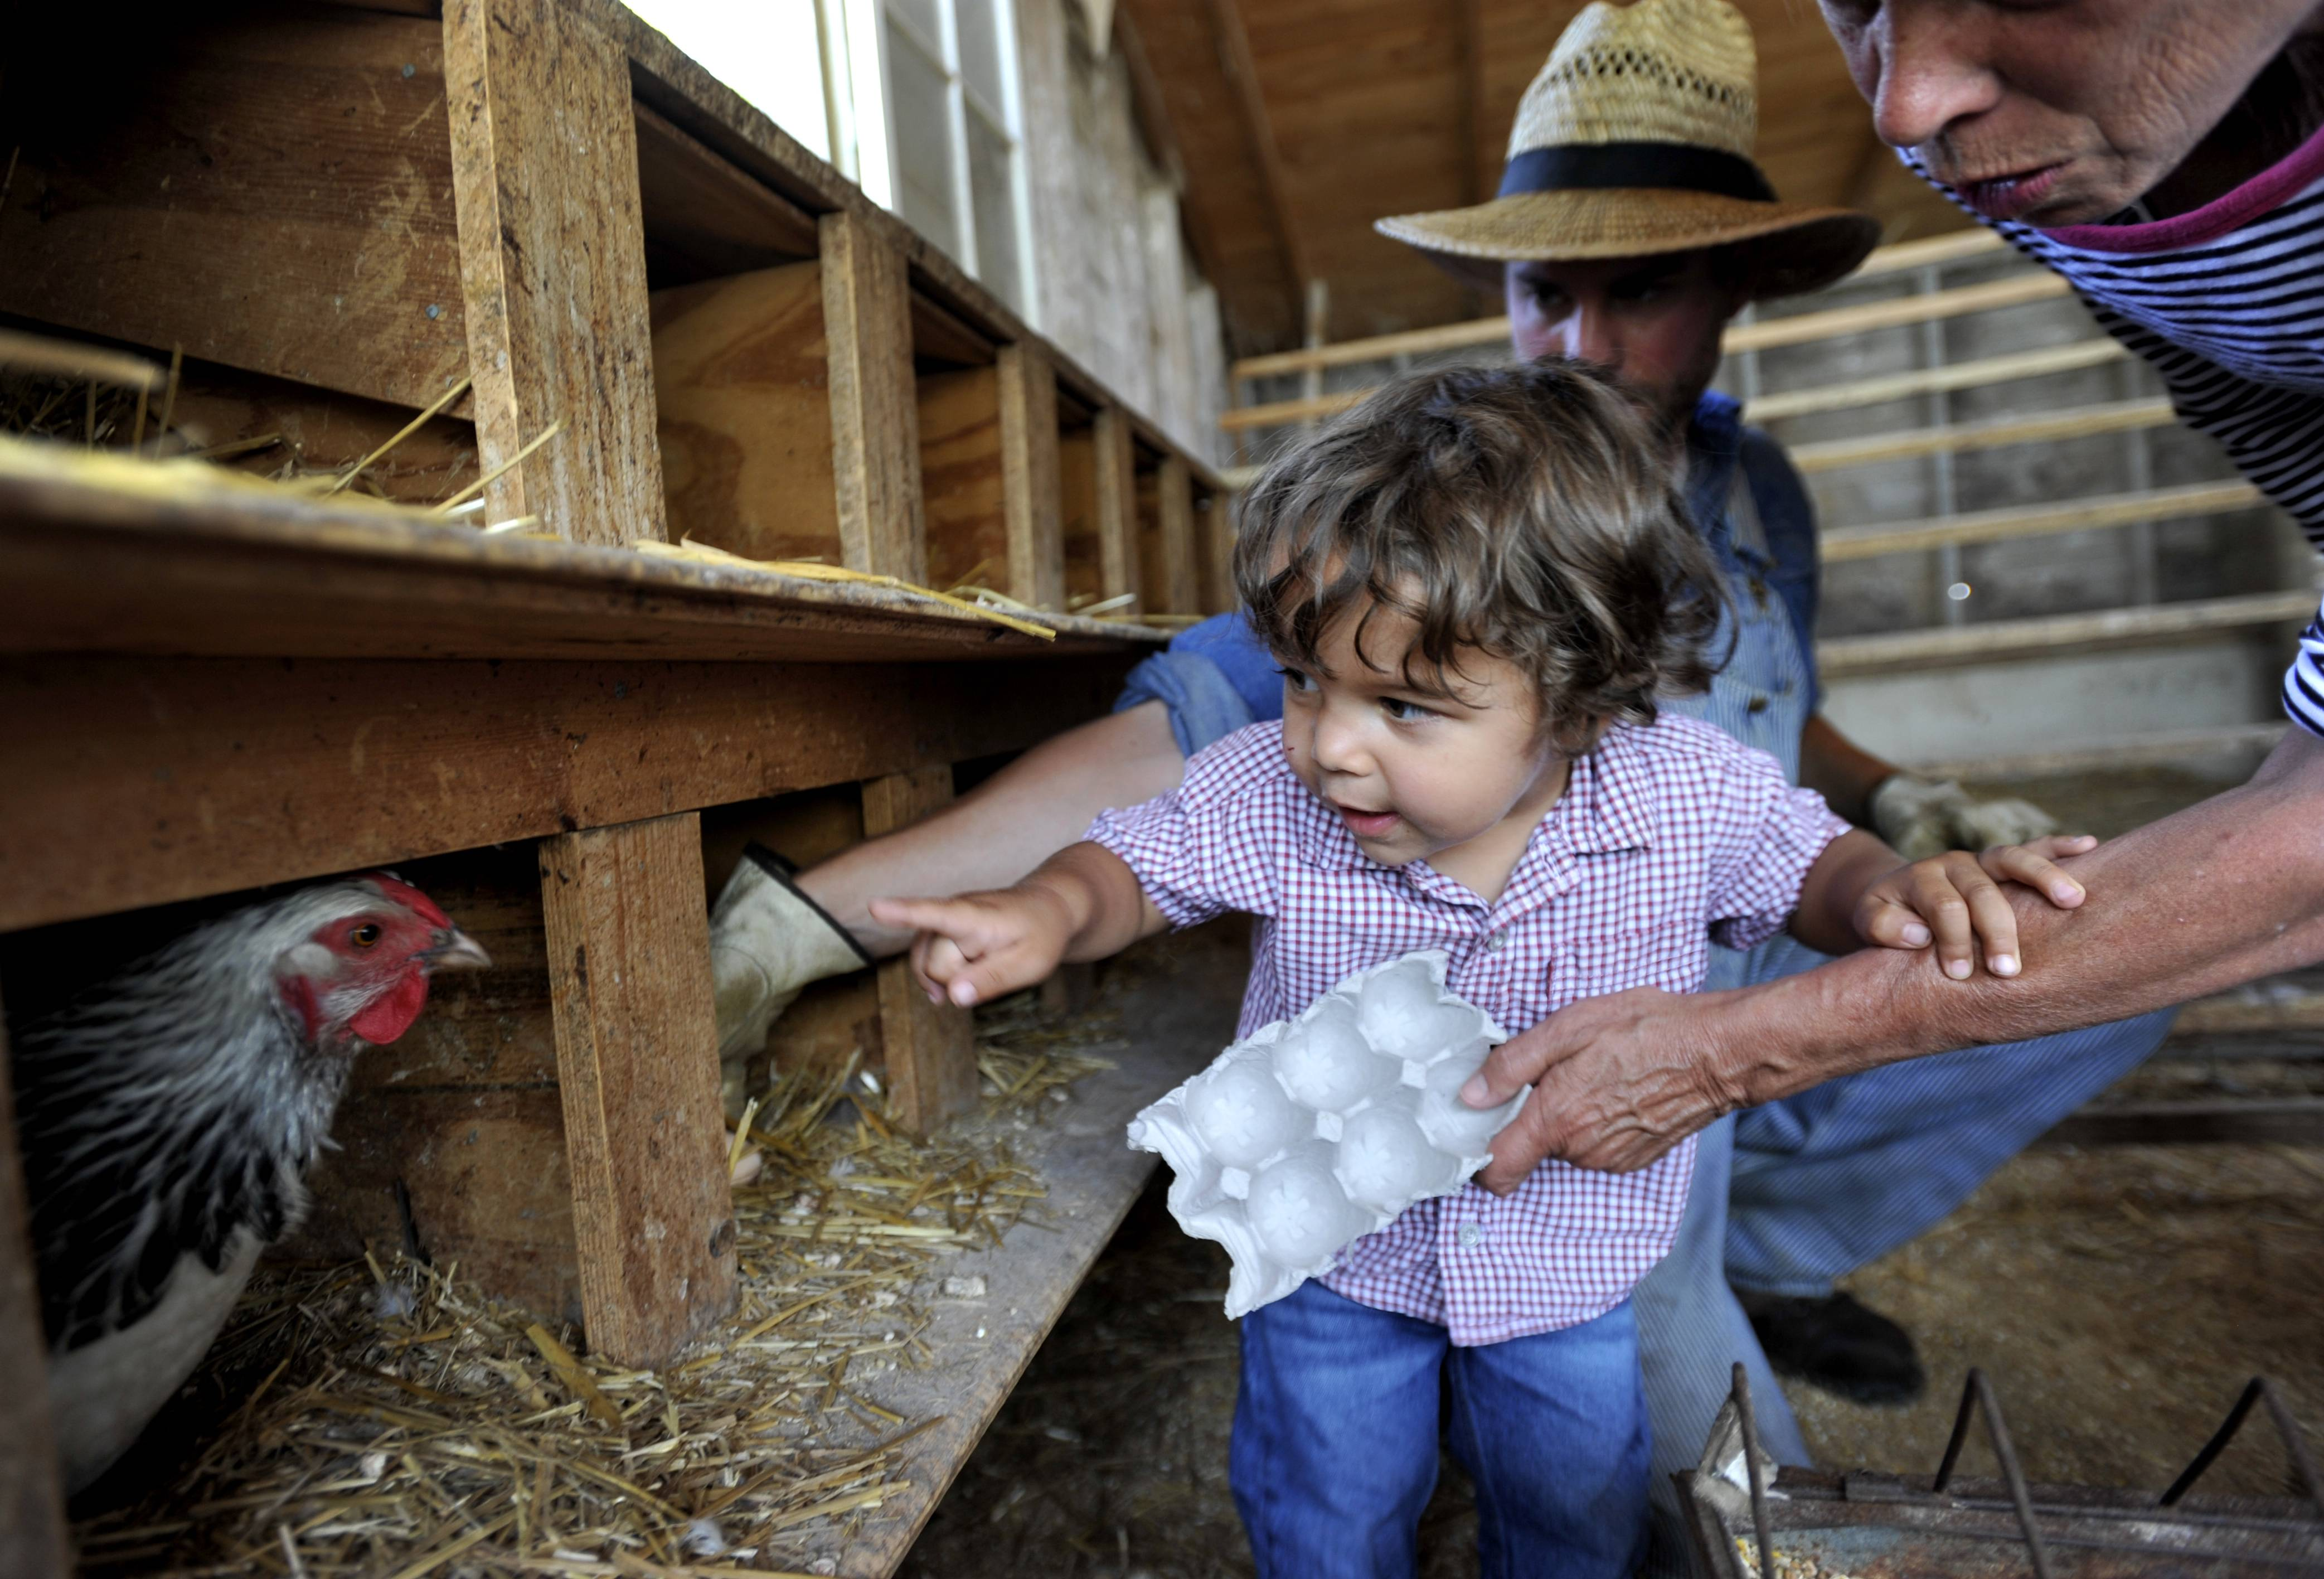 Maddox Epstein, 2 of Atlanta peeks into a hen's nest before grabbing an egg during the chicken and egg demo Wednesday at Primrose Farm in St. Charles. Justin Sikora, agricultural interpreter at Primrose Farm, guided Maddox and his grandmother Jane Pickle of St. Charles on the tour.